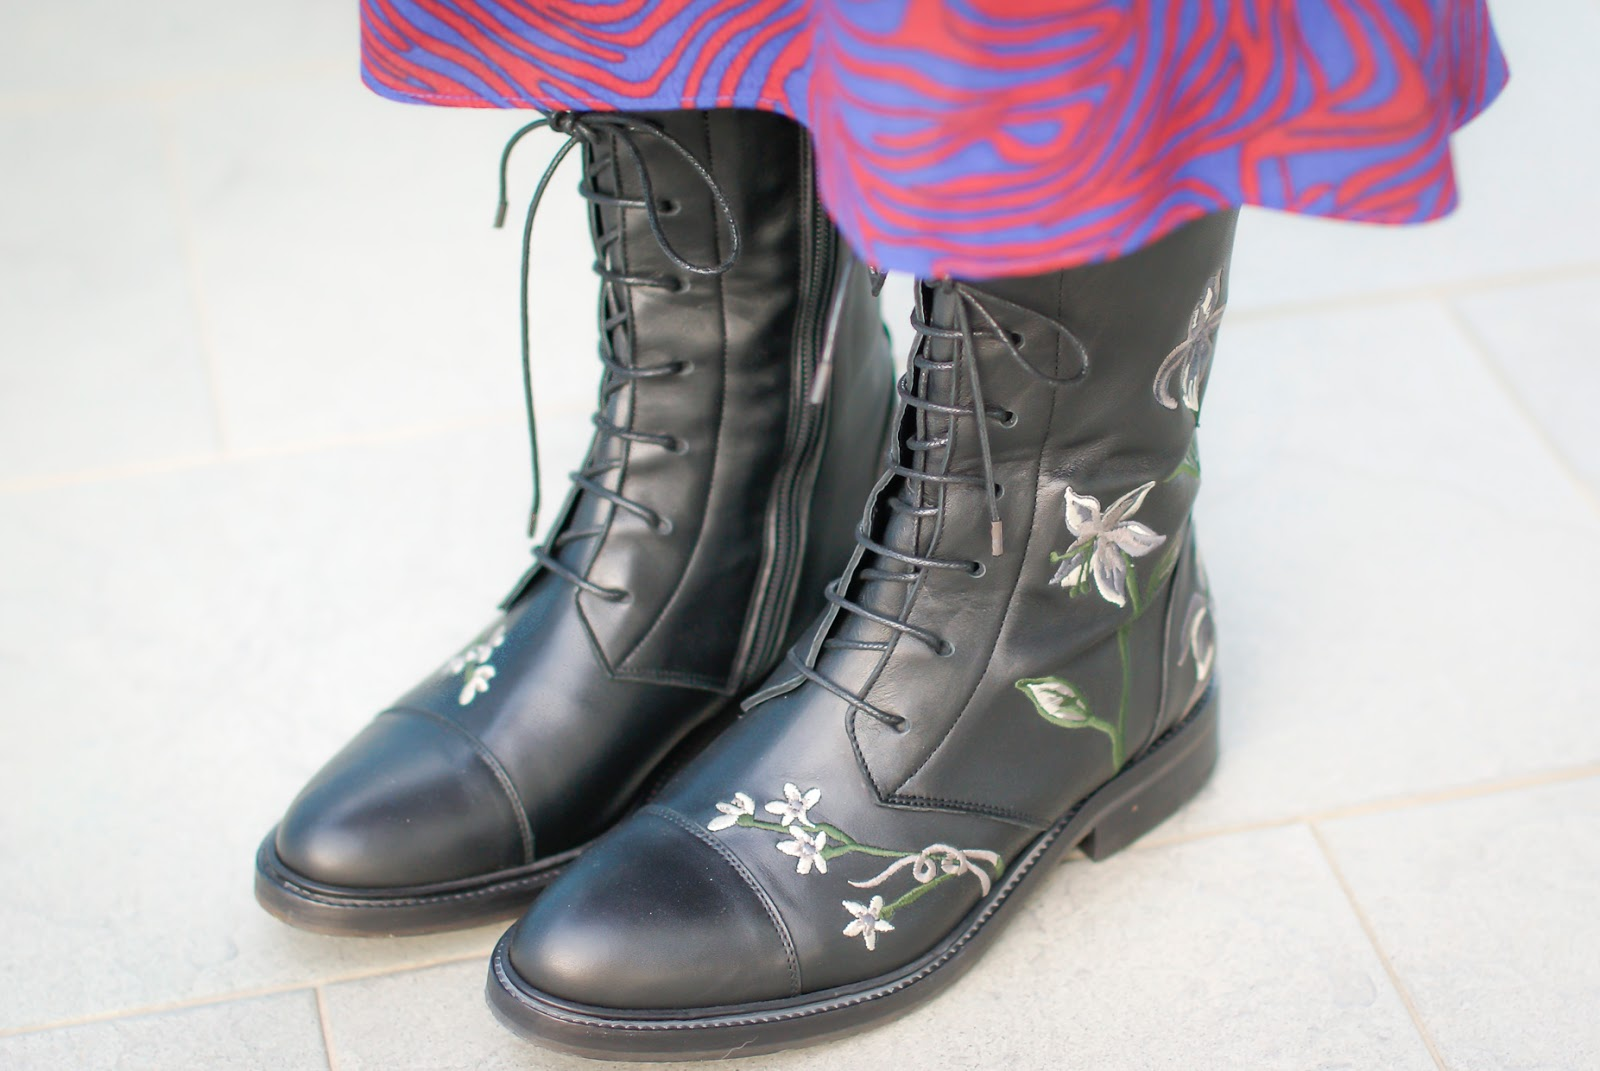 Anfibi ricamati, embroidered combat boots on Fashion and Cookies fashion blog, fashion blogger style